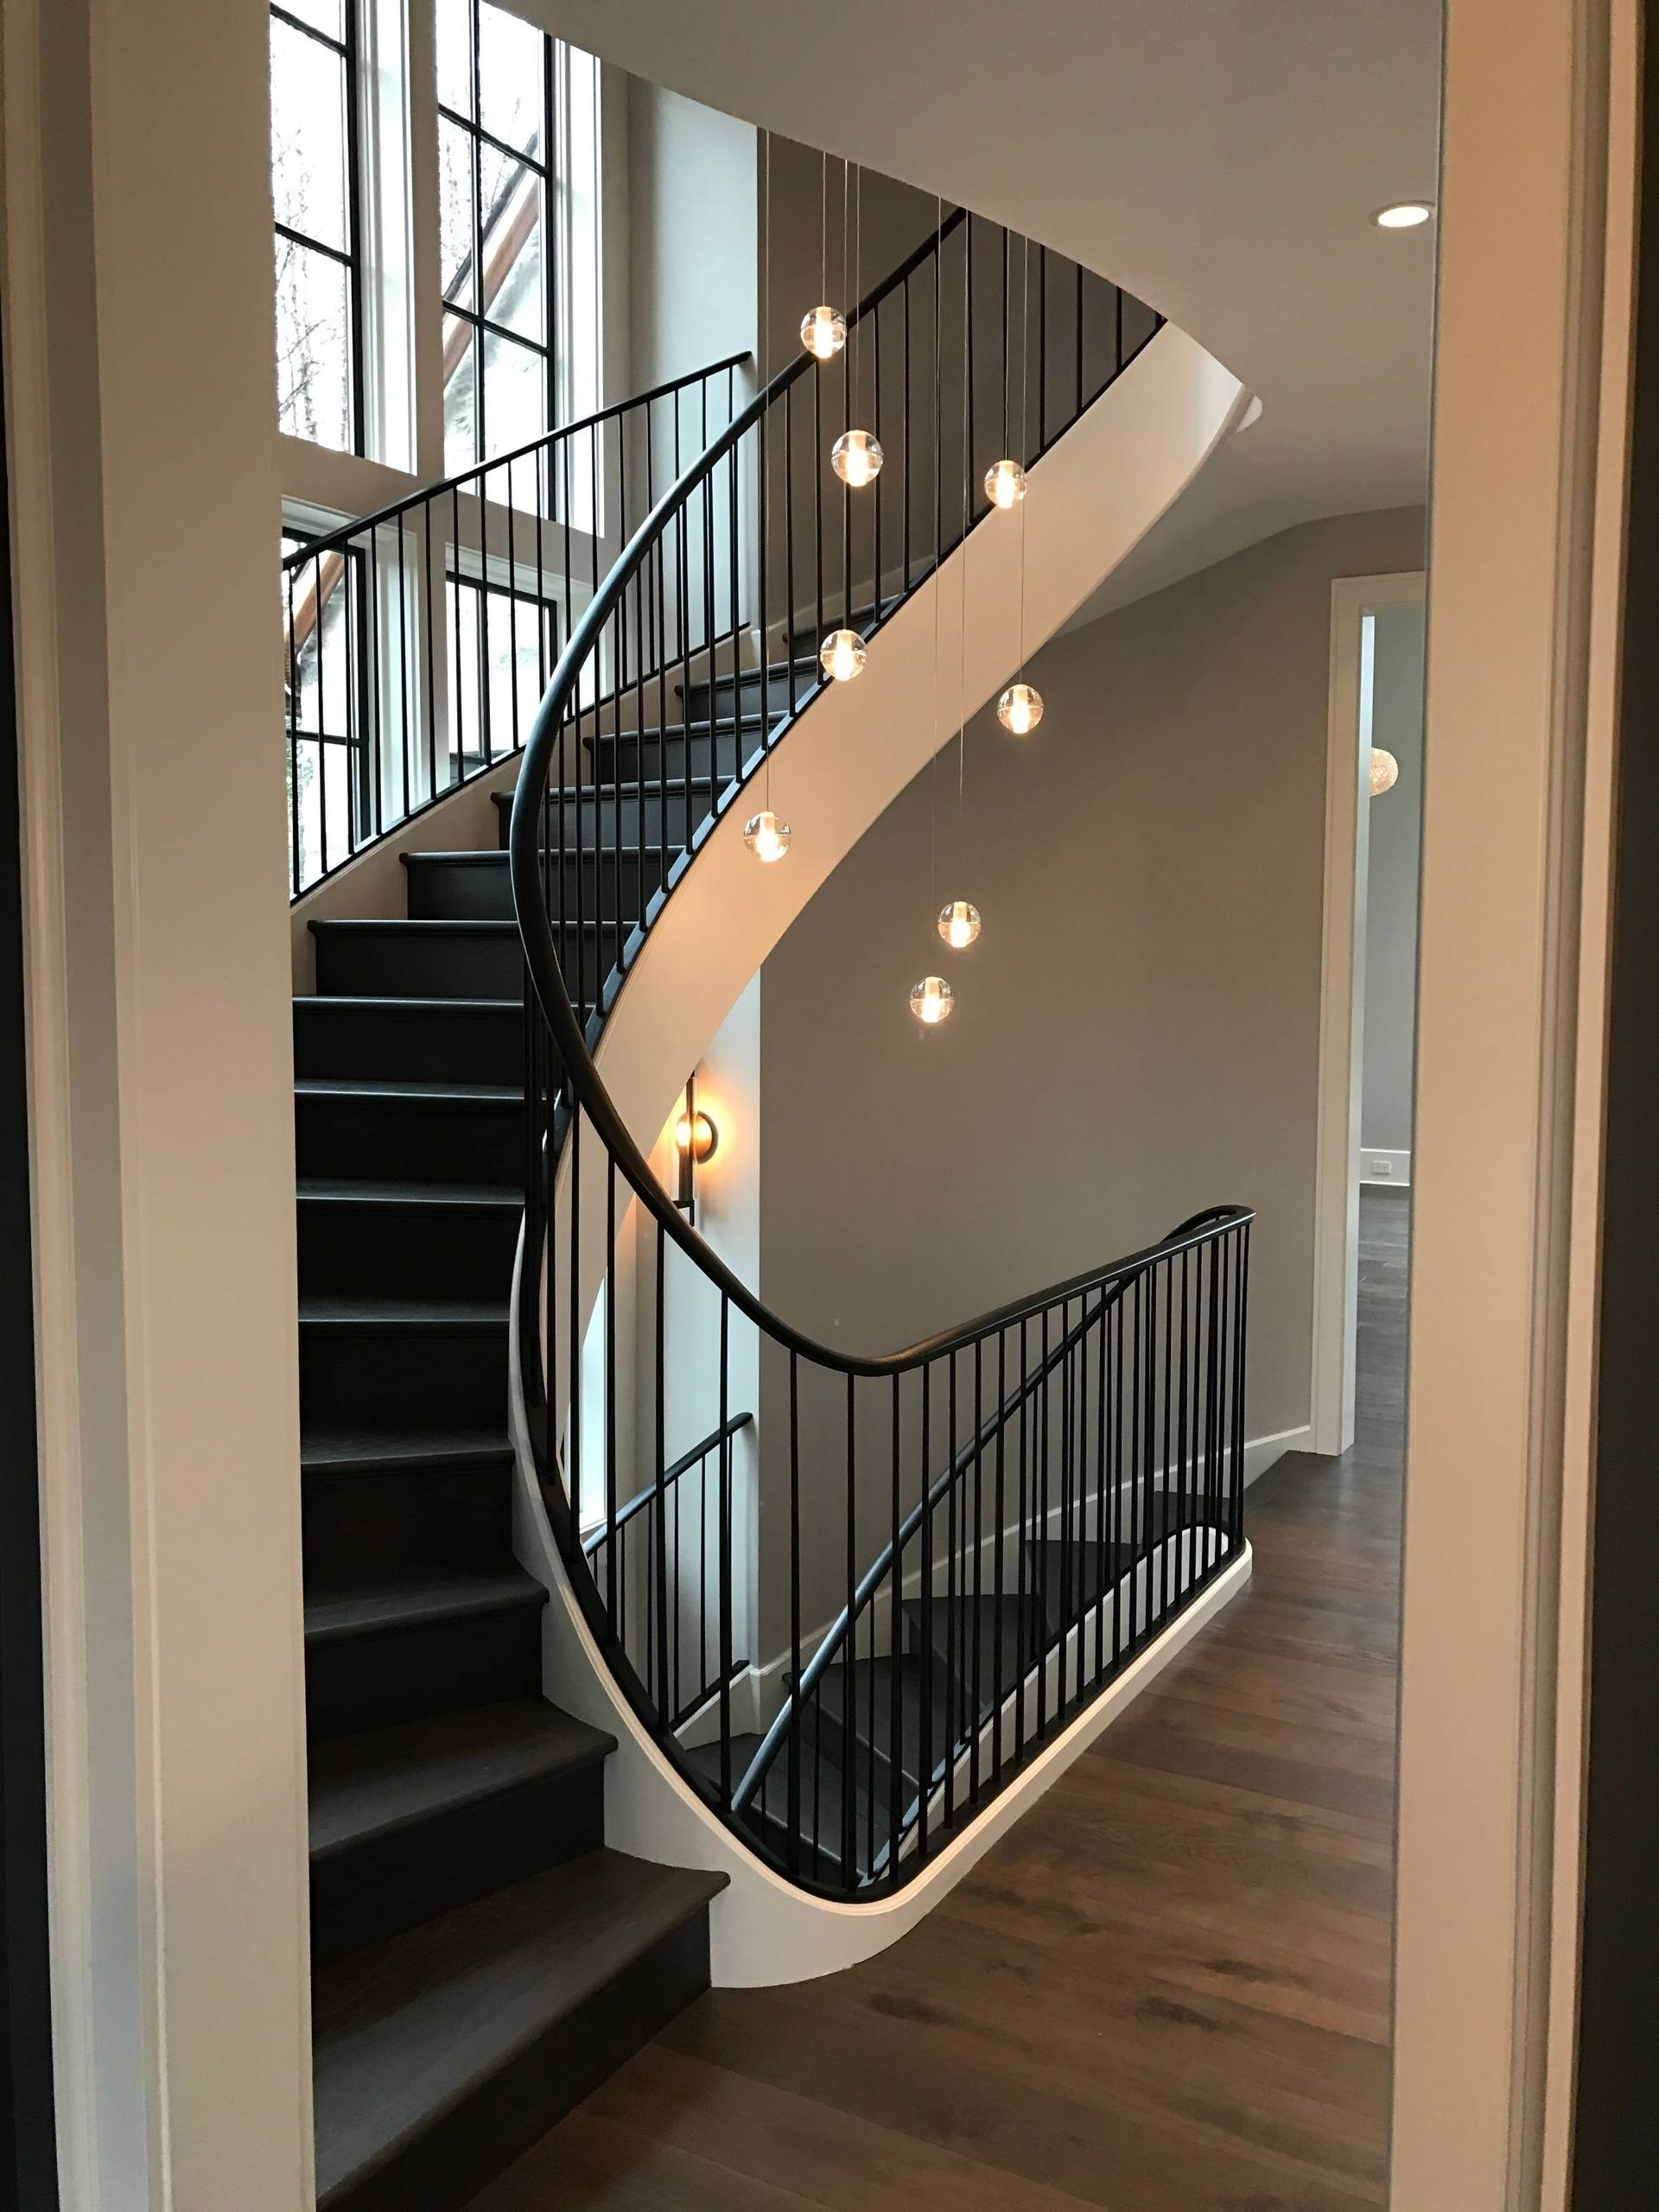 75 Beautiful Painted Spiral Staircase Pictures Ideas November 2020 Houzz